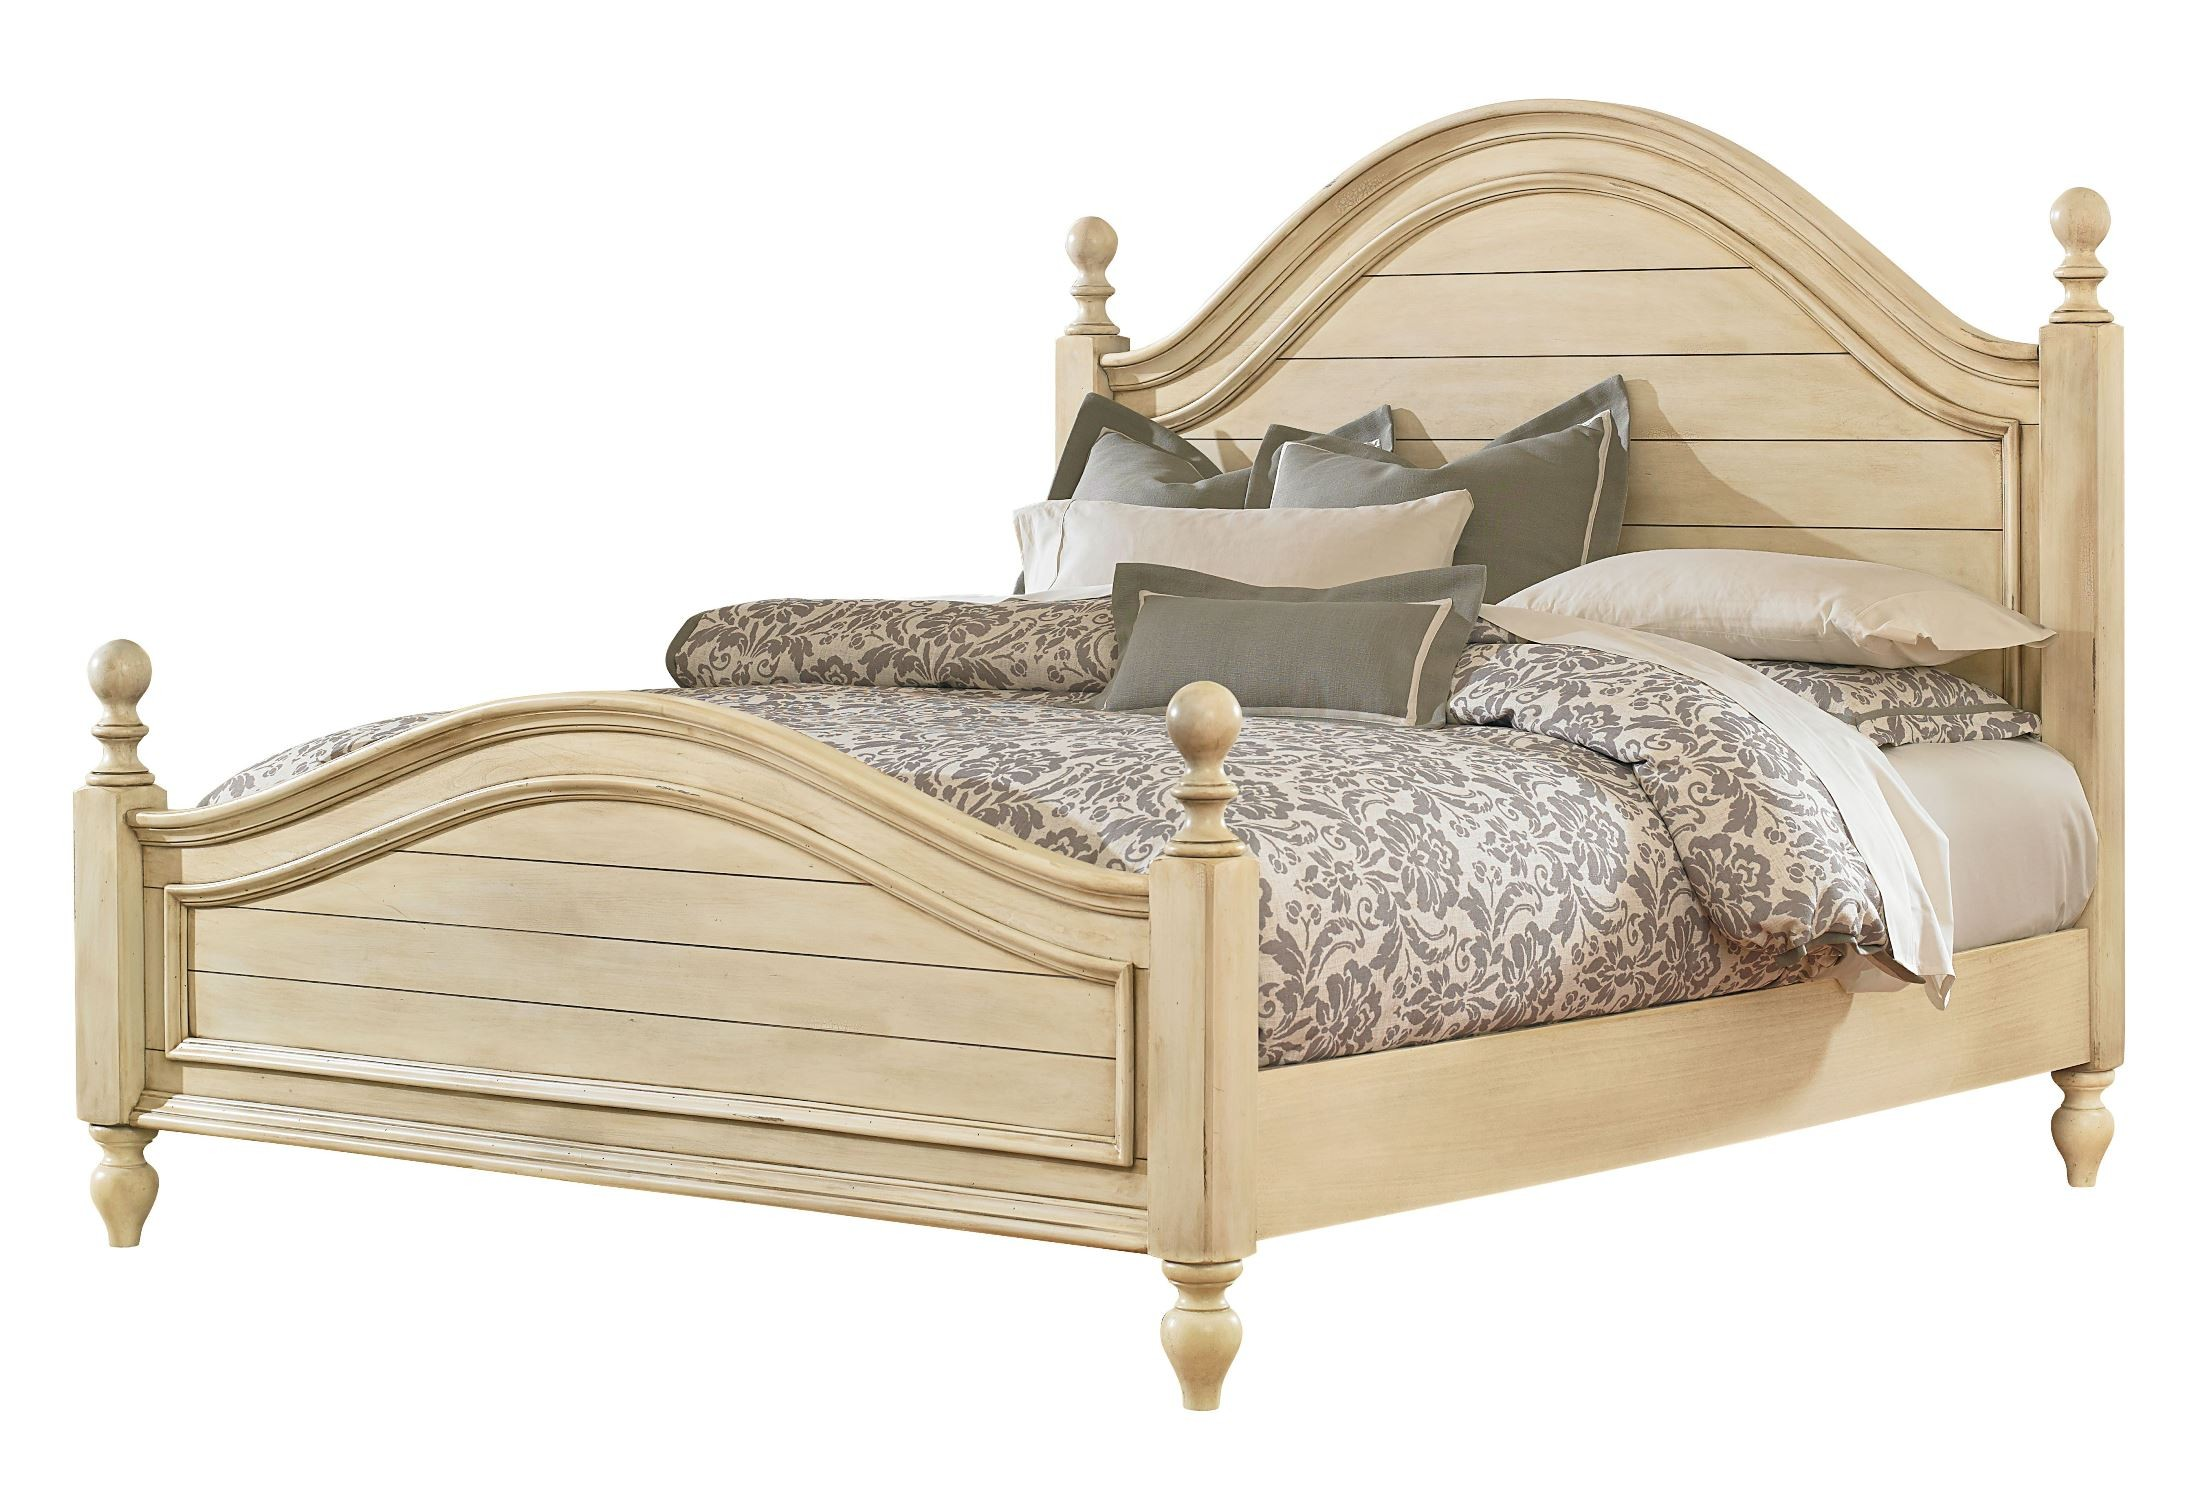 Chateau Antique French Bisque Queen Poster Bed From